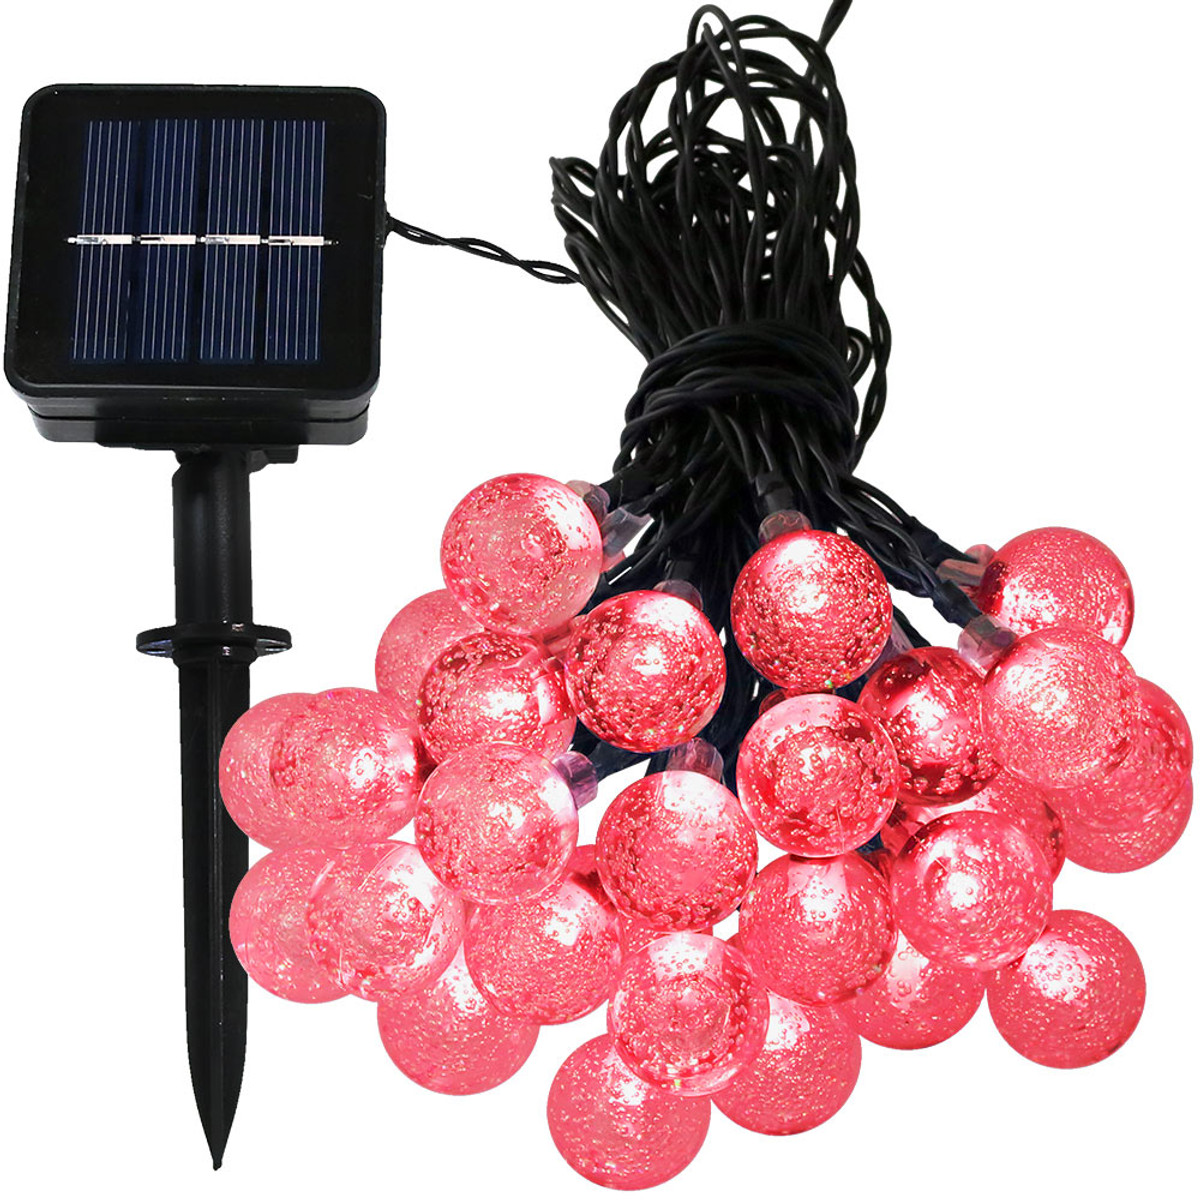 Sunnydaze 30 Count Led Solar Powered Globe String Lights